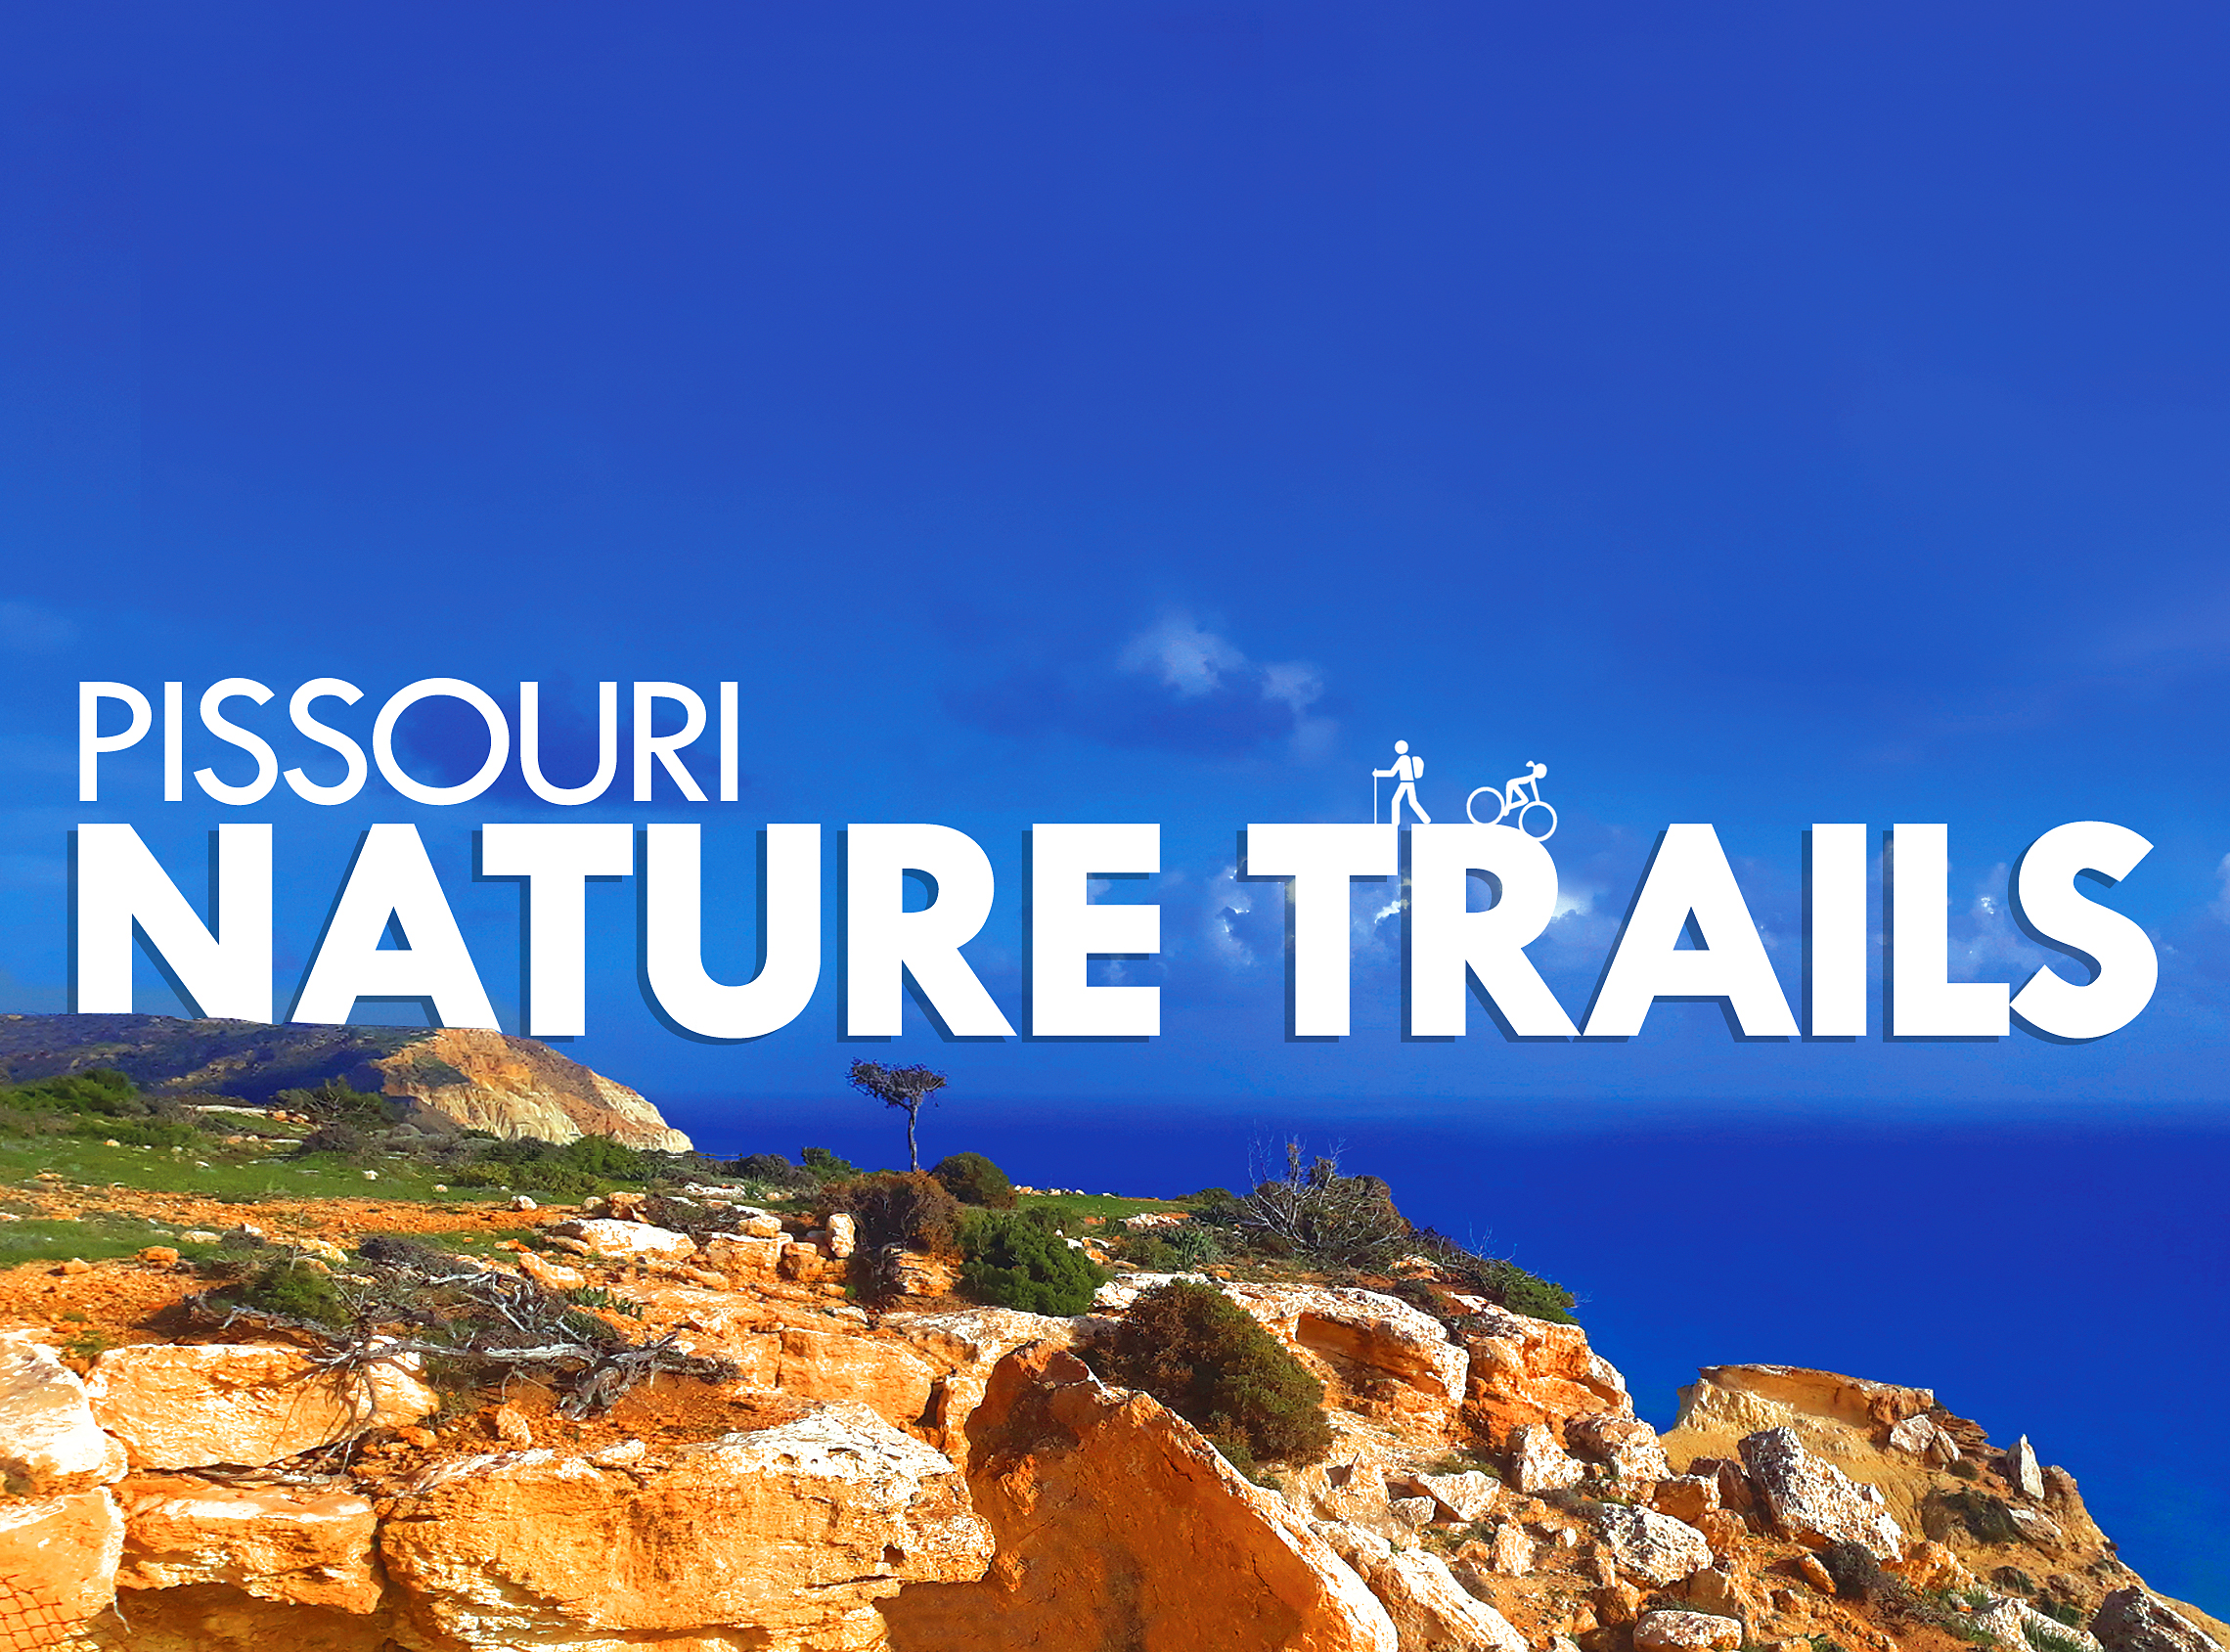 PISSOURI NATURE TRAILS